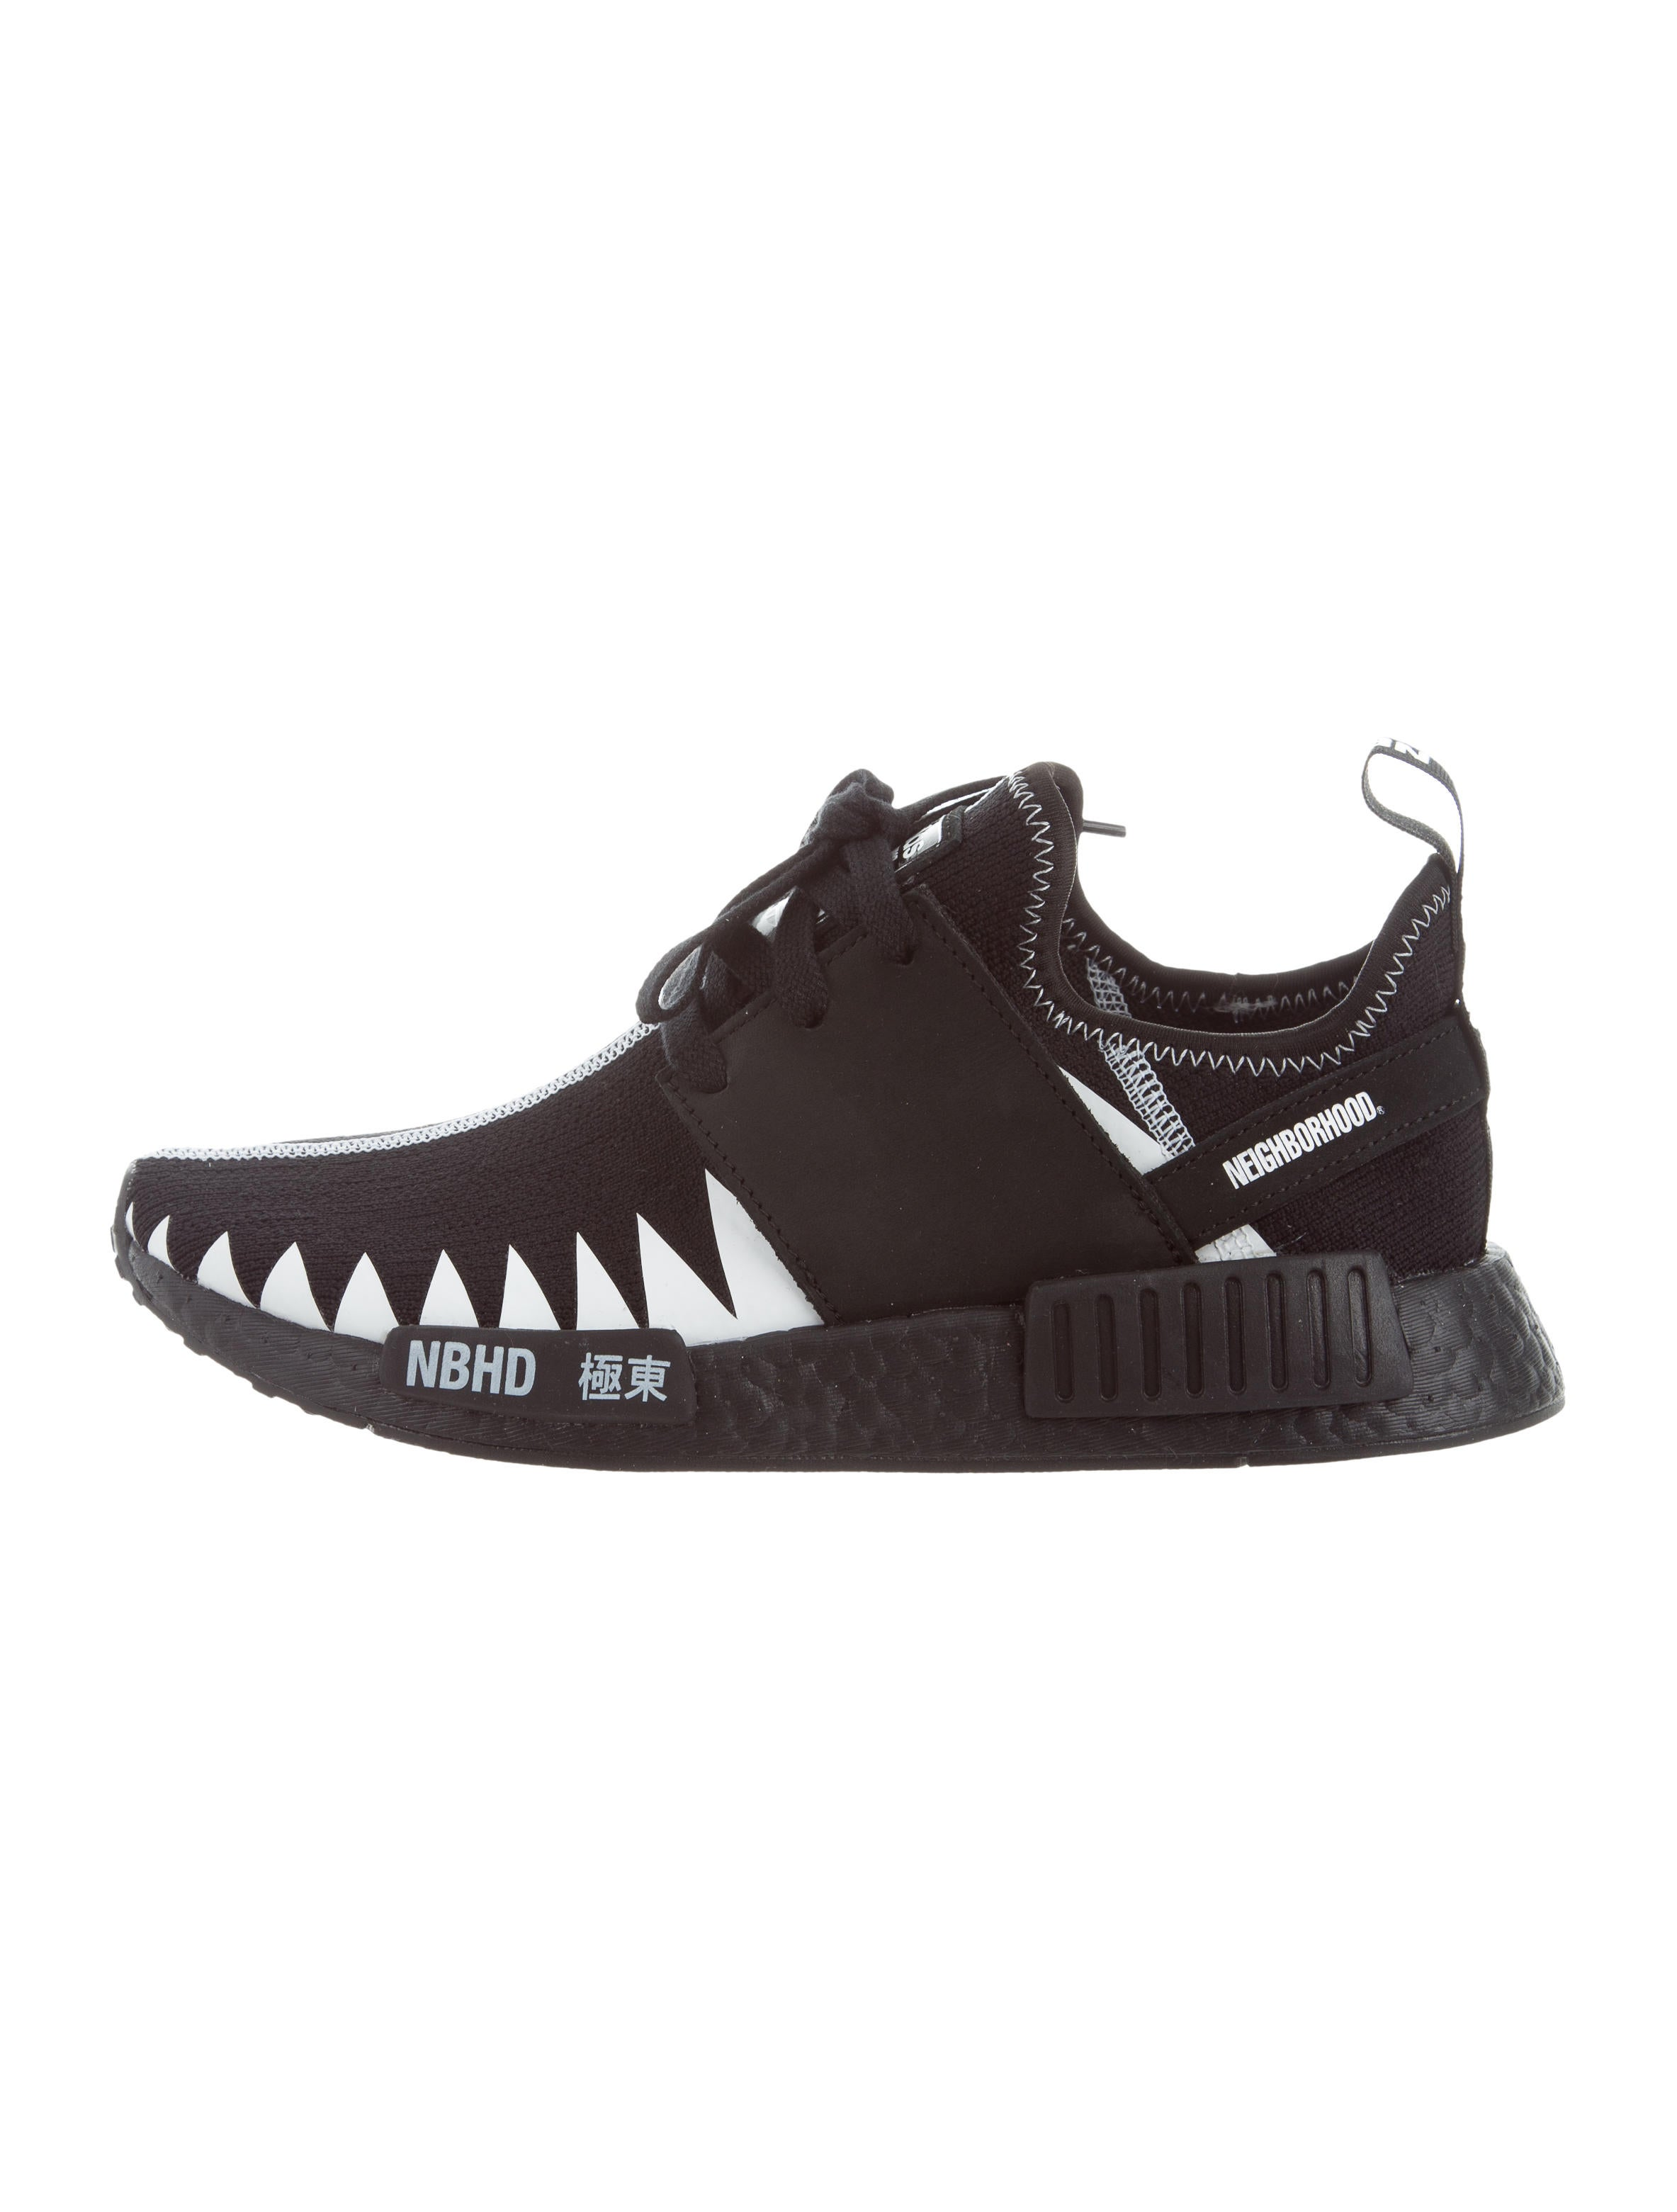 info for cbc1b 50fe7 NMD R1 PK NBHD Sneakers w/ Tags